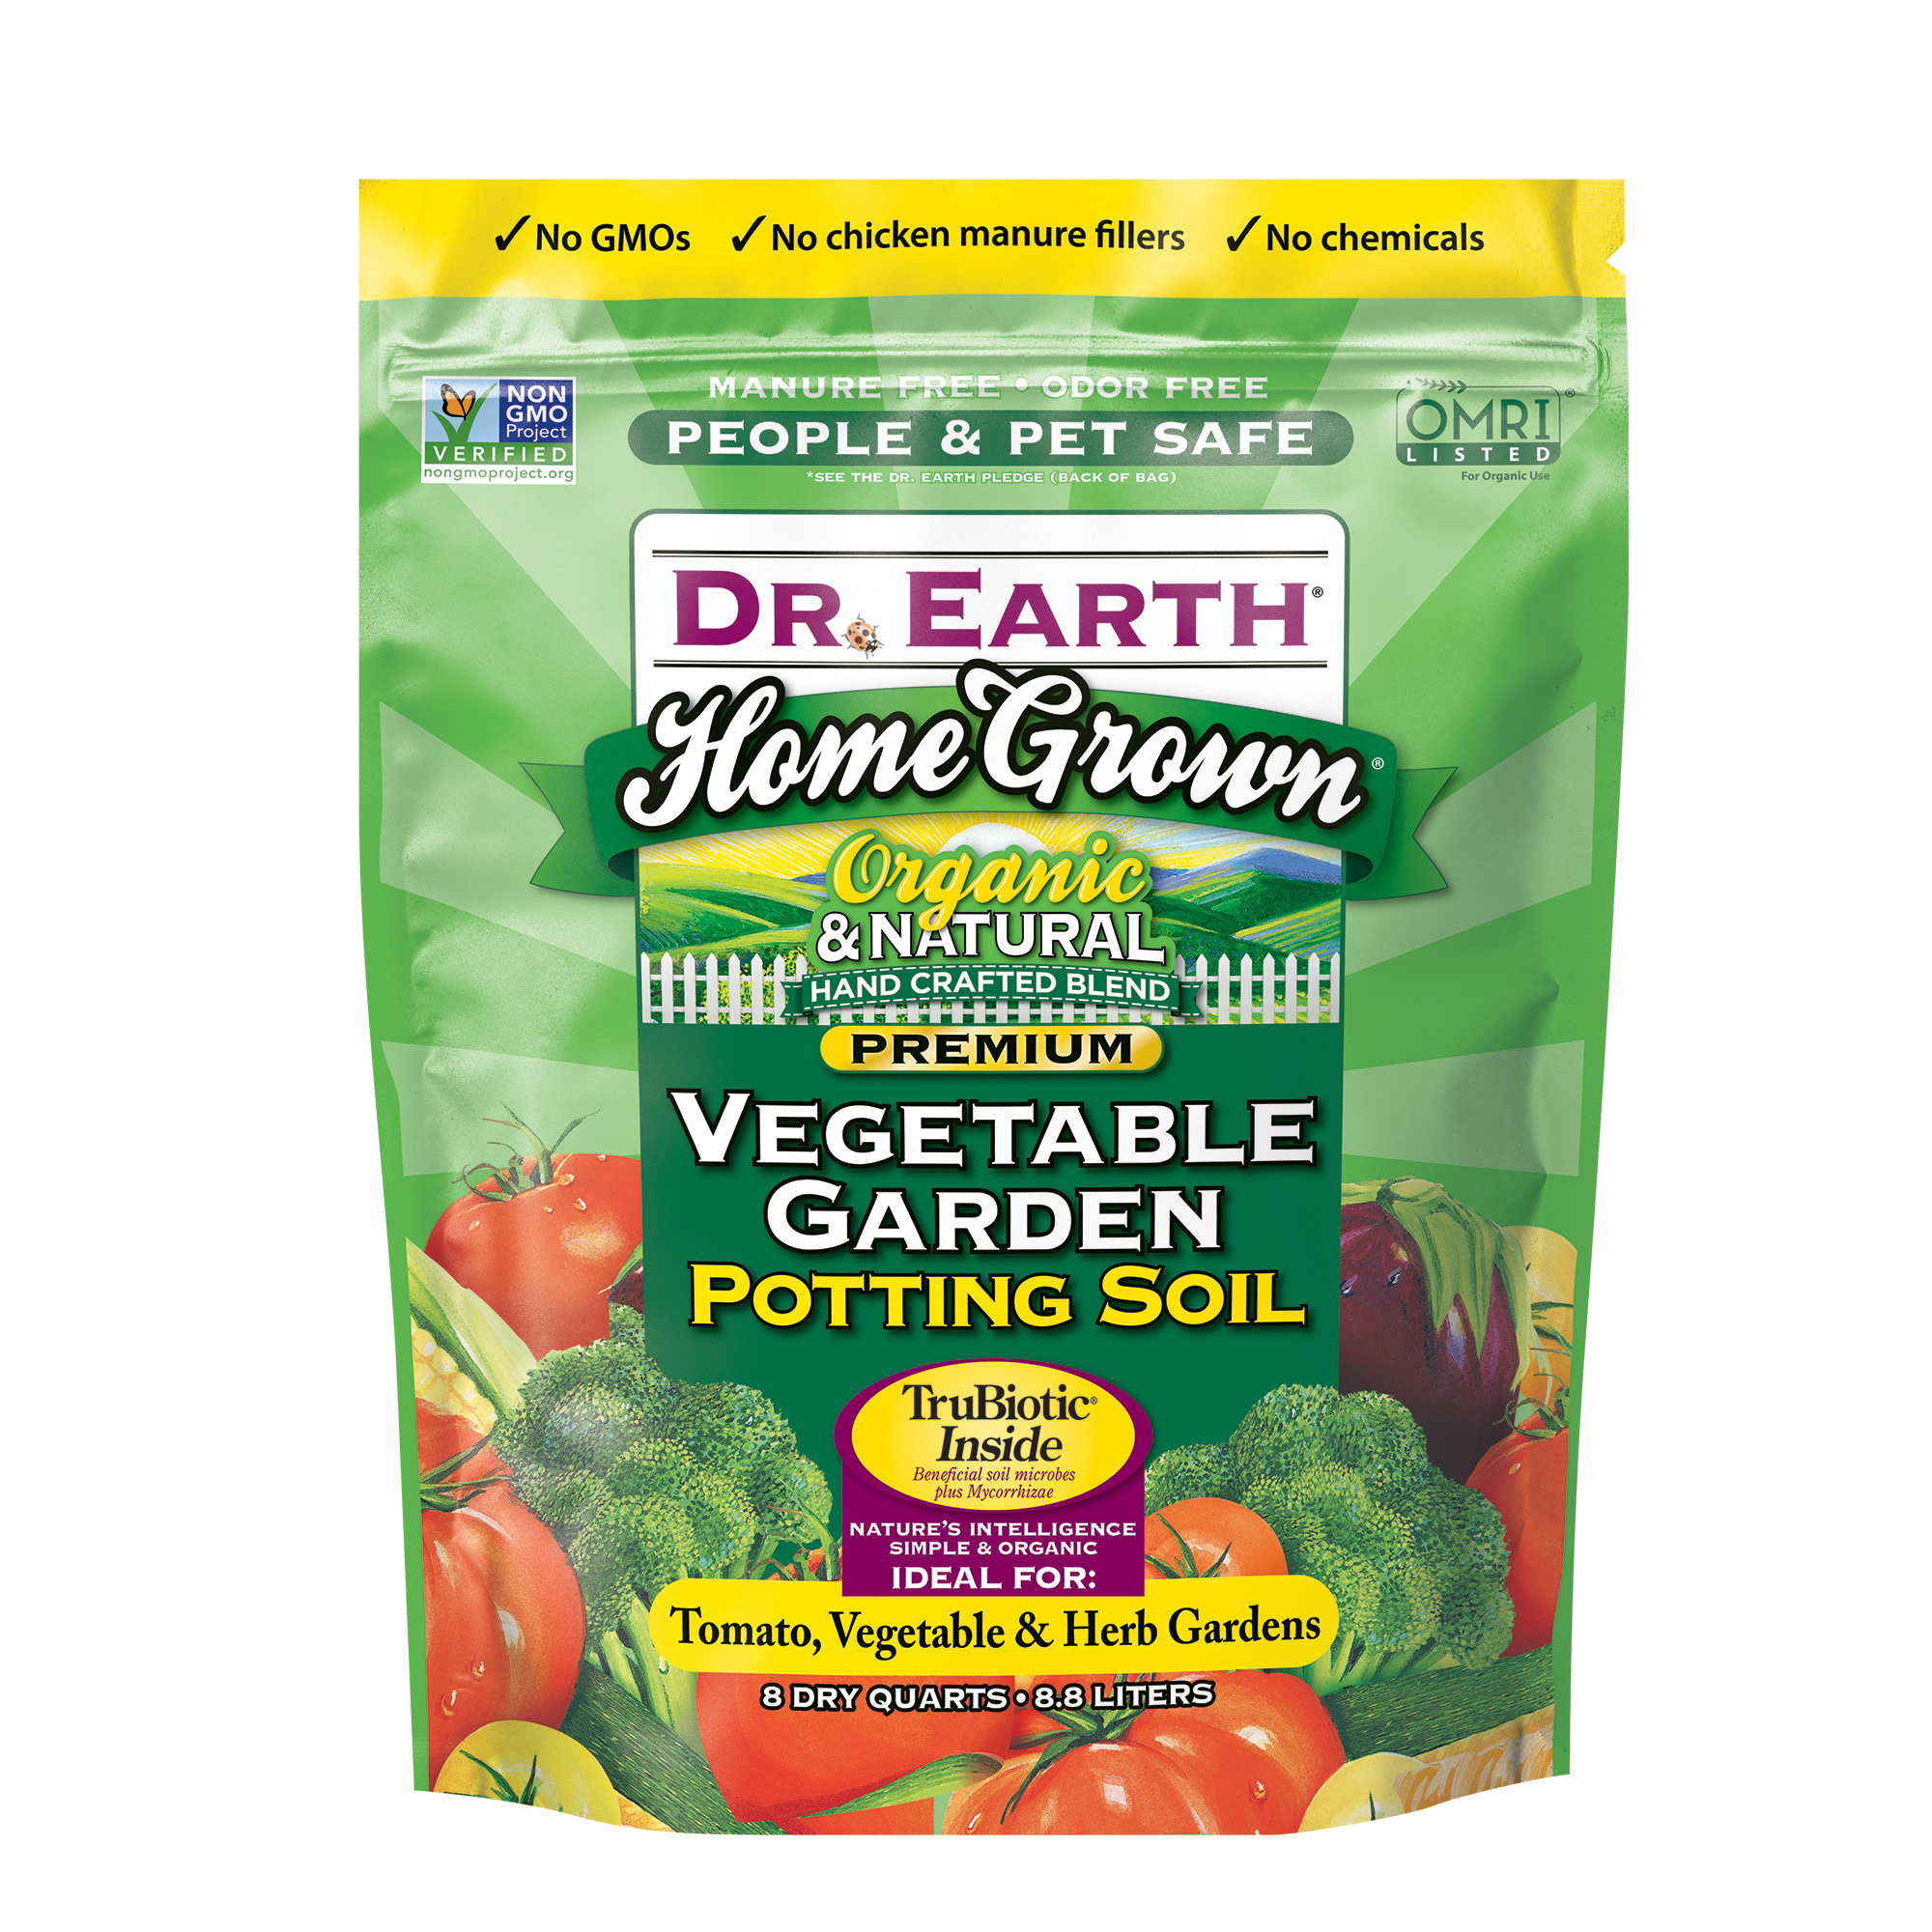 HOME GROWN® VEGETABLE GARDEN POTTING SOIL 8qt